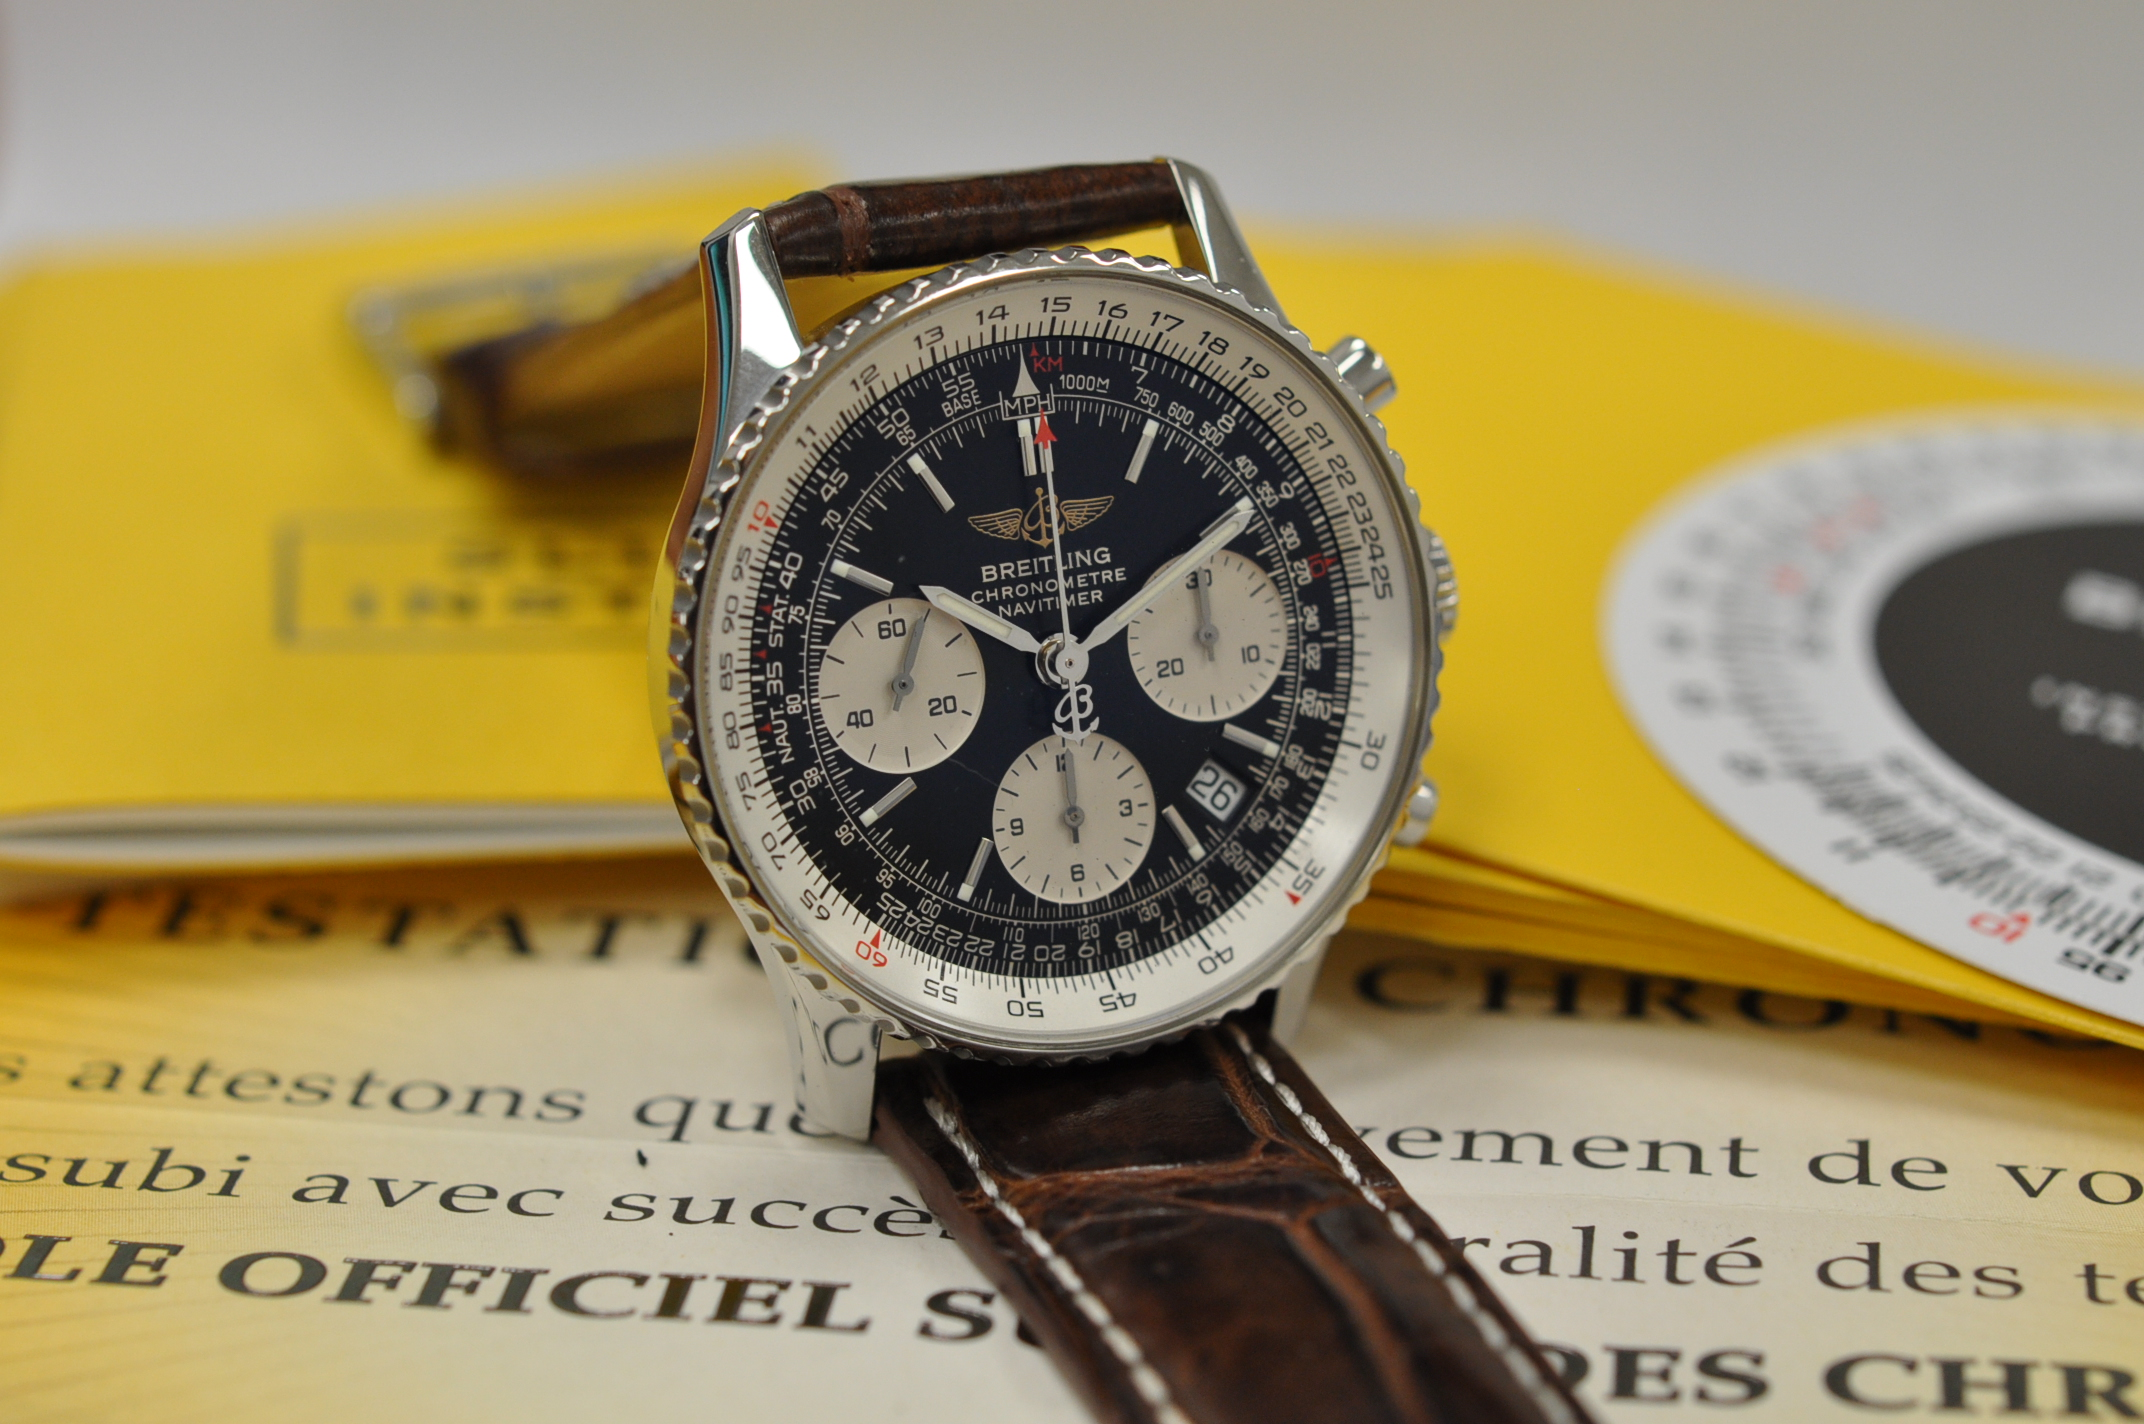 2009 Navitimer A23322 full set